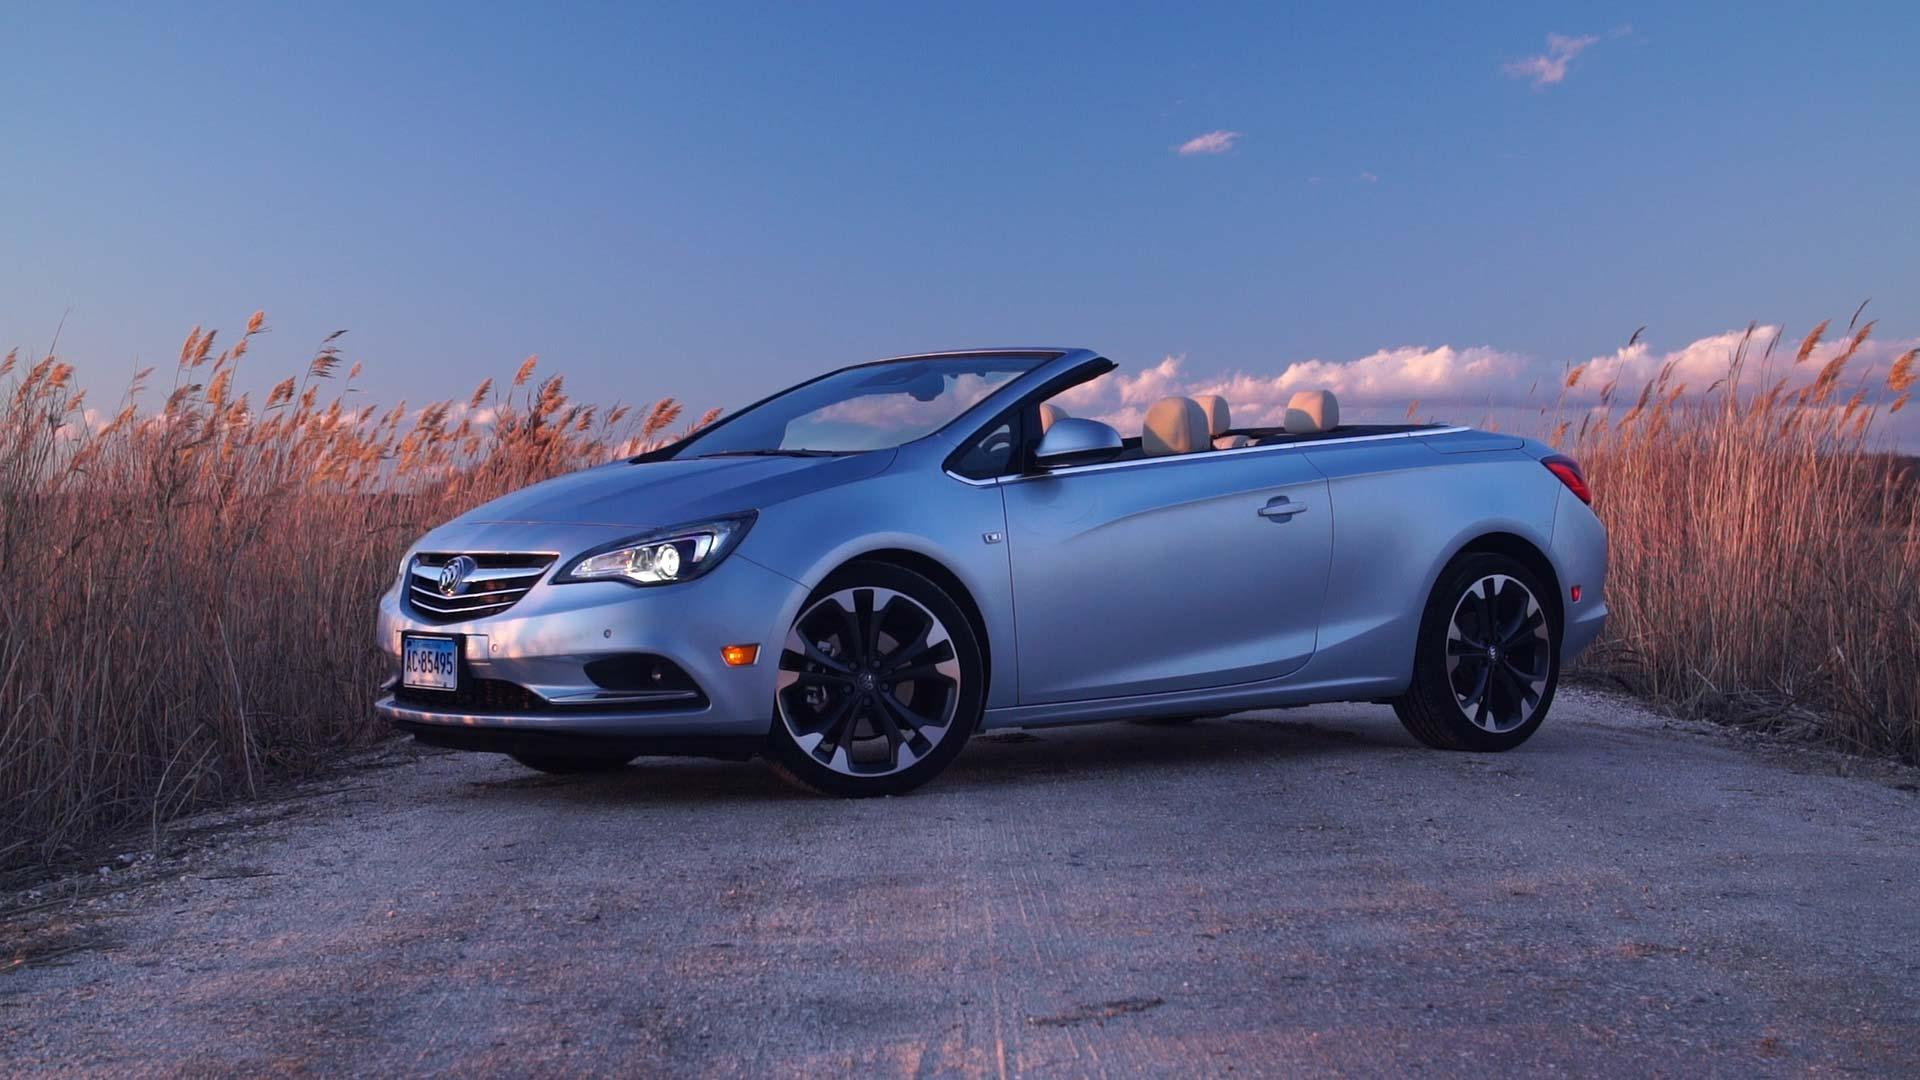 Baby cribs reviews consumer reports -  Talking Cars With Consumer Reports Opens Up About The Buick Cascada